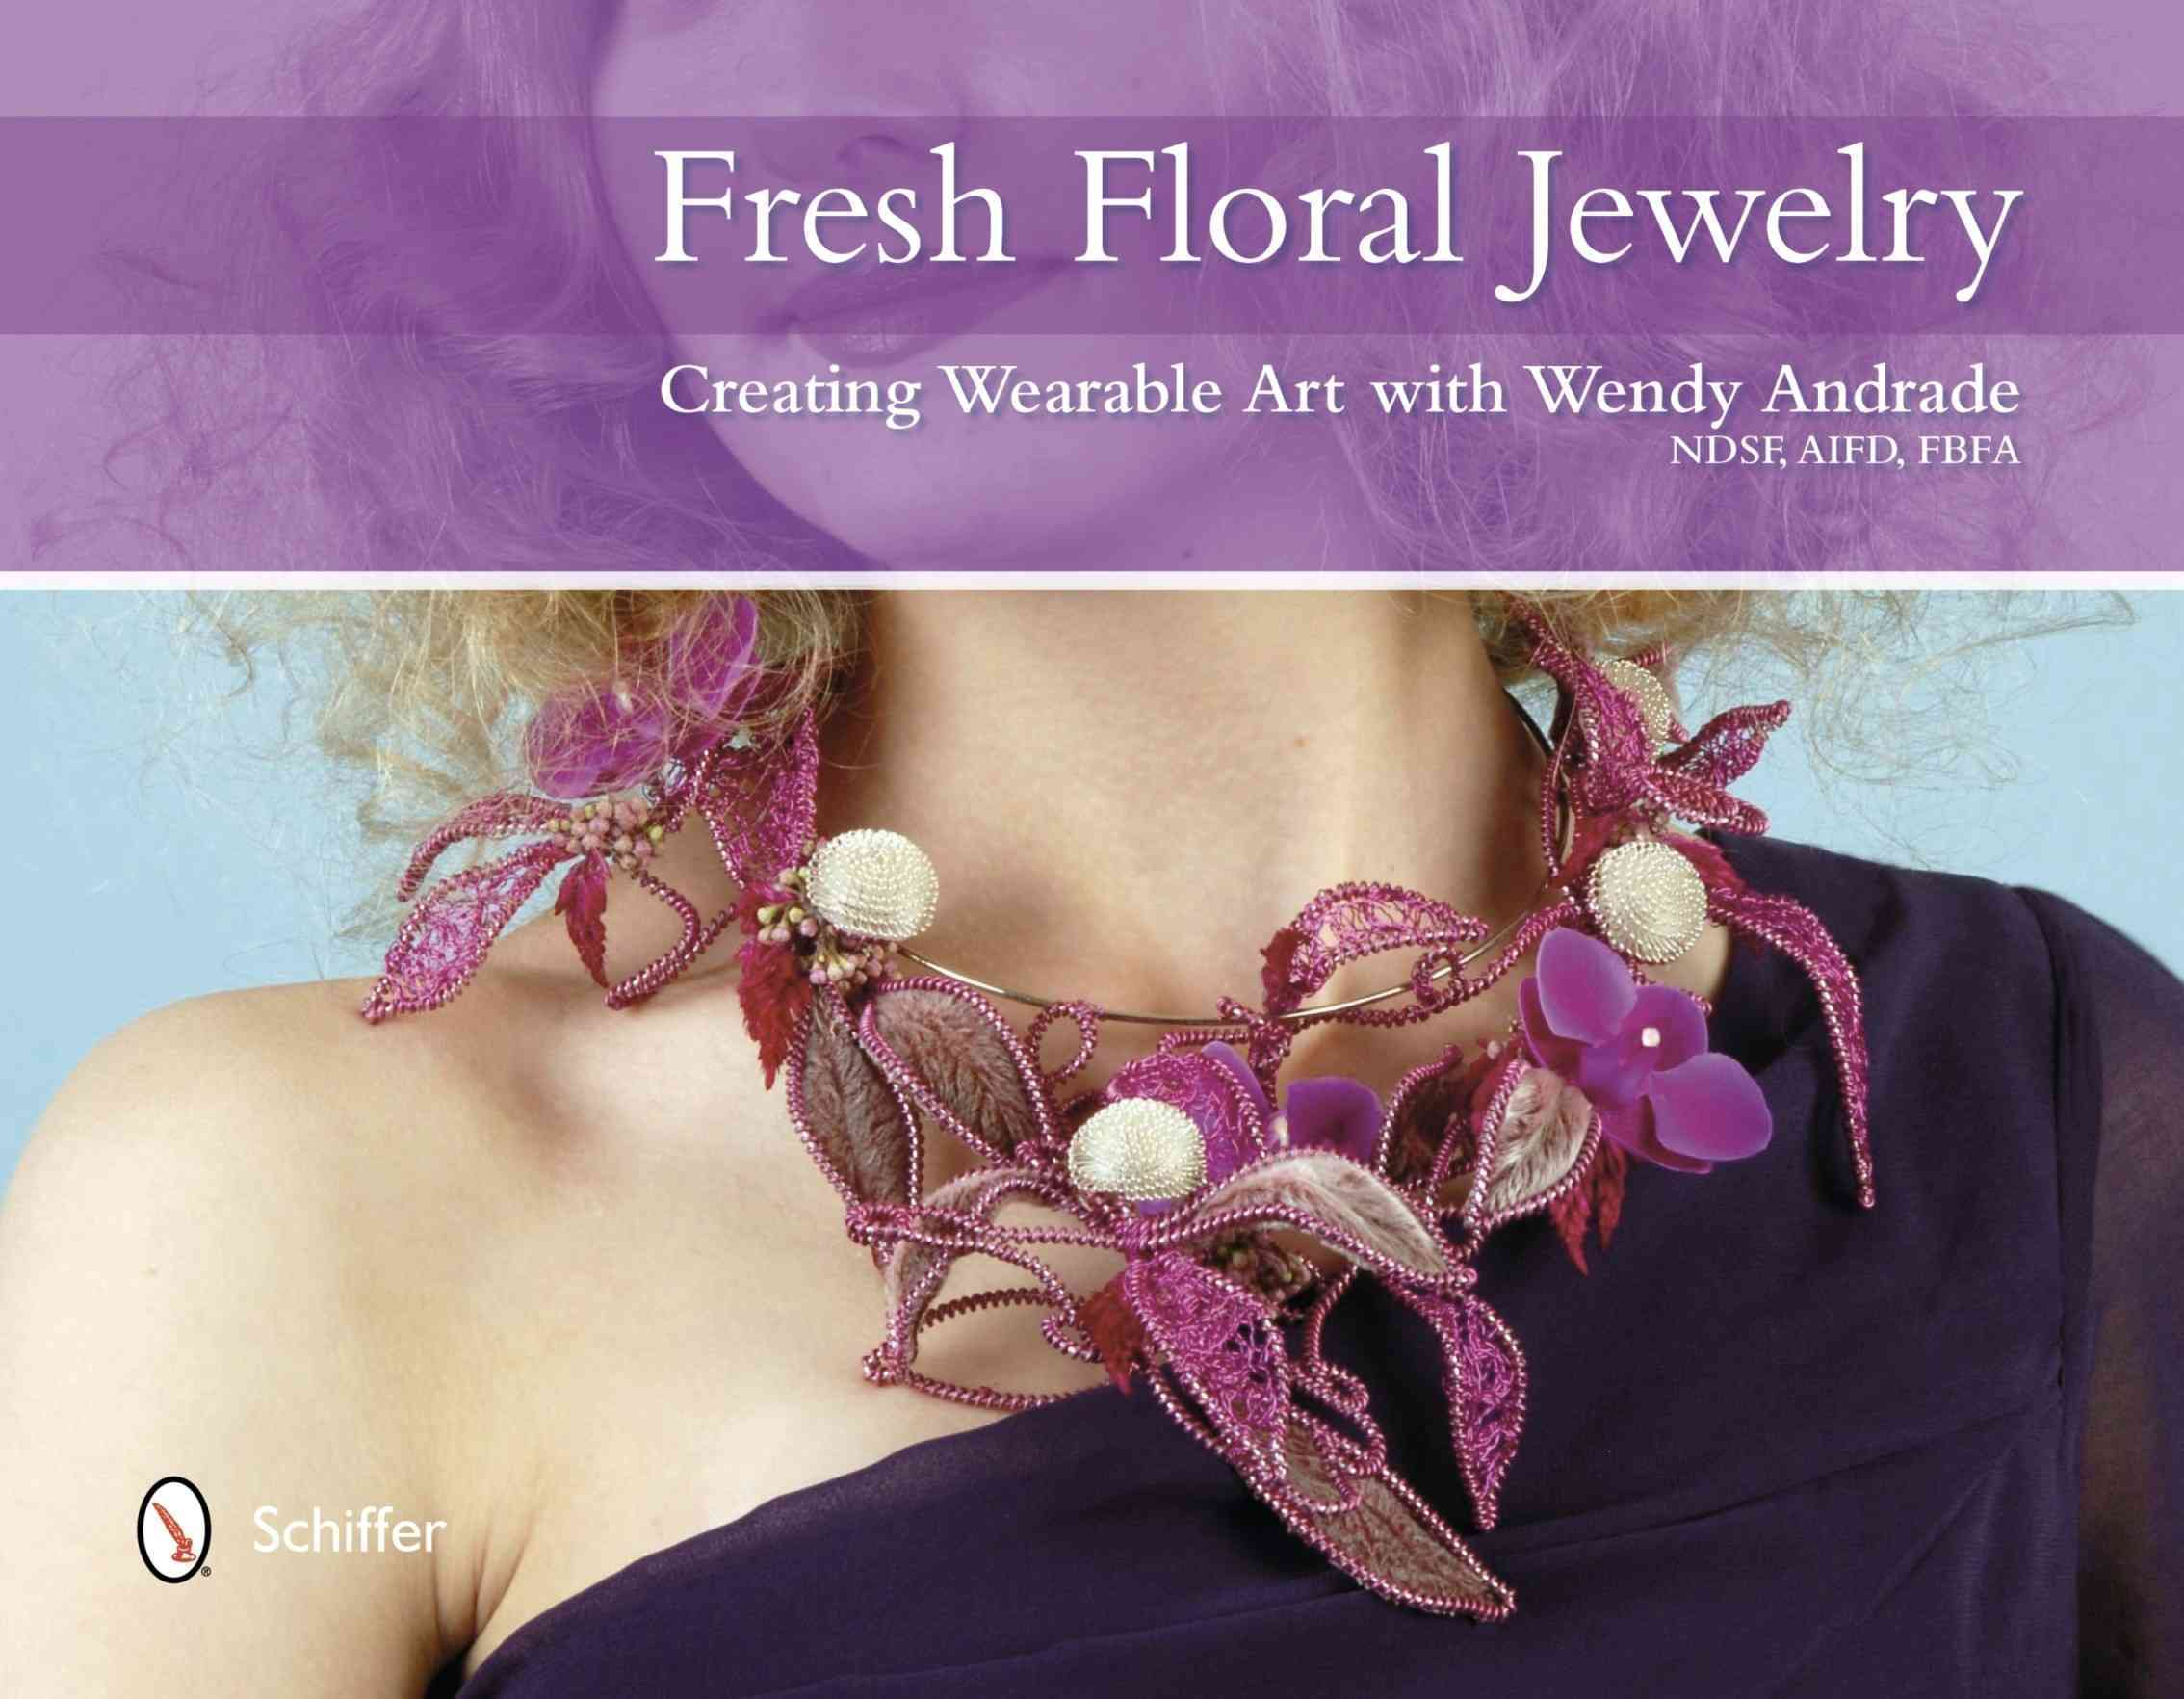 Fresh Floral Jewelry By Andrade, Wendy